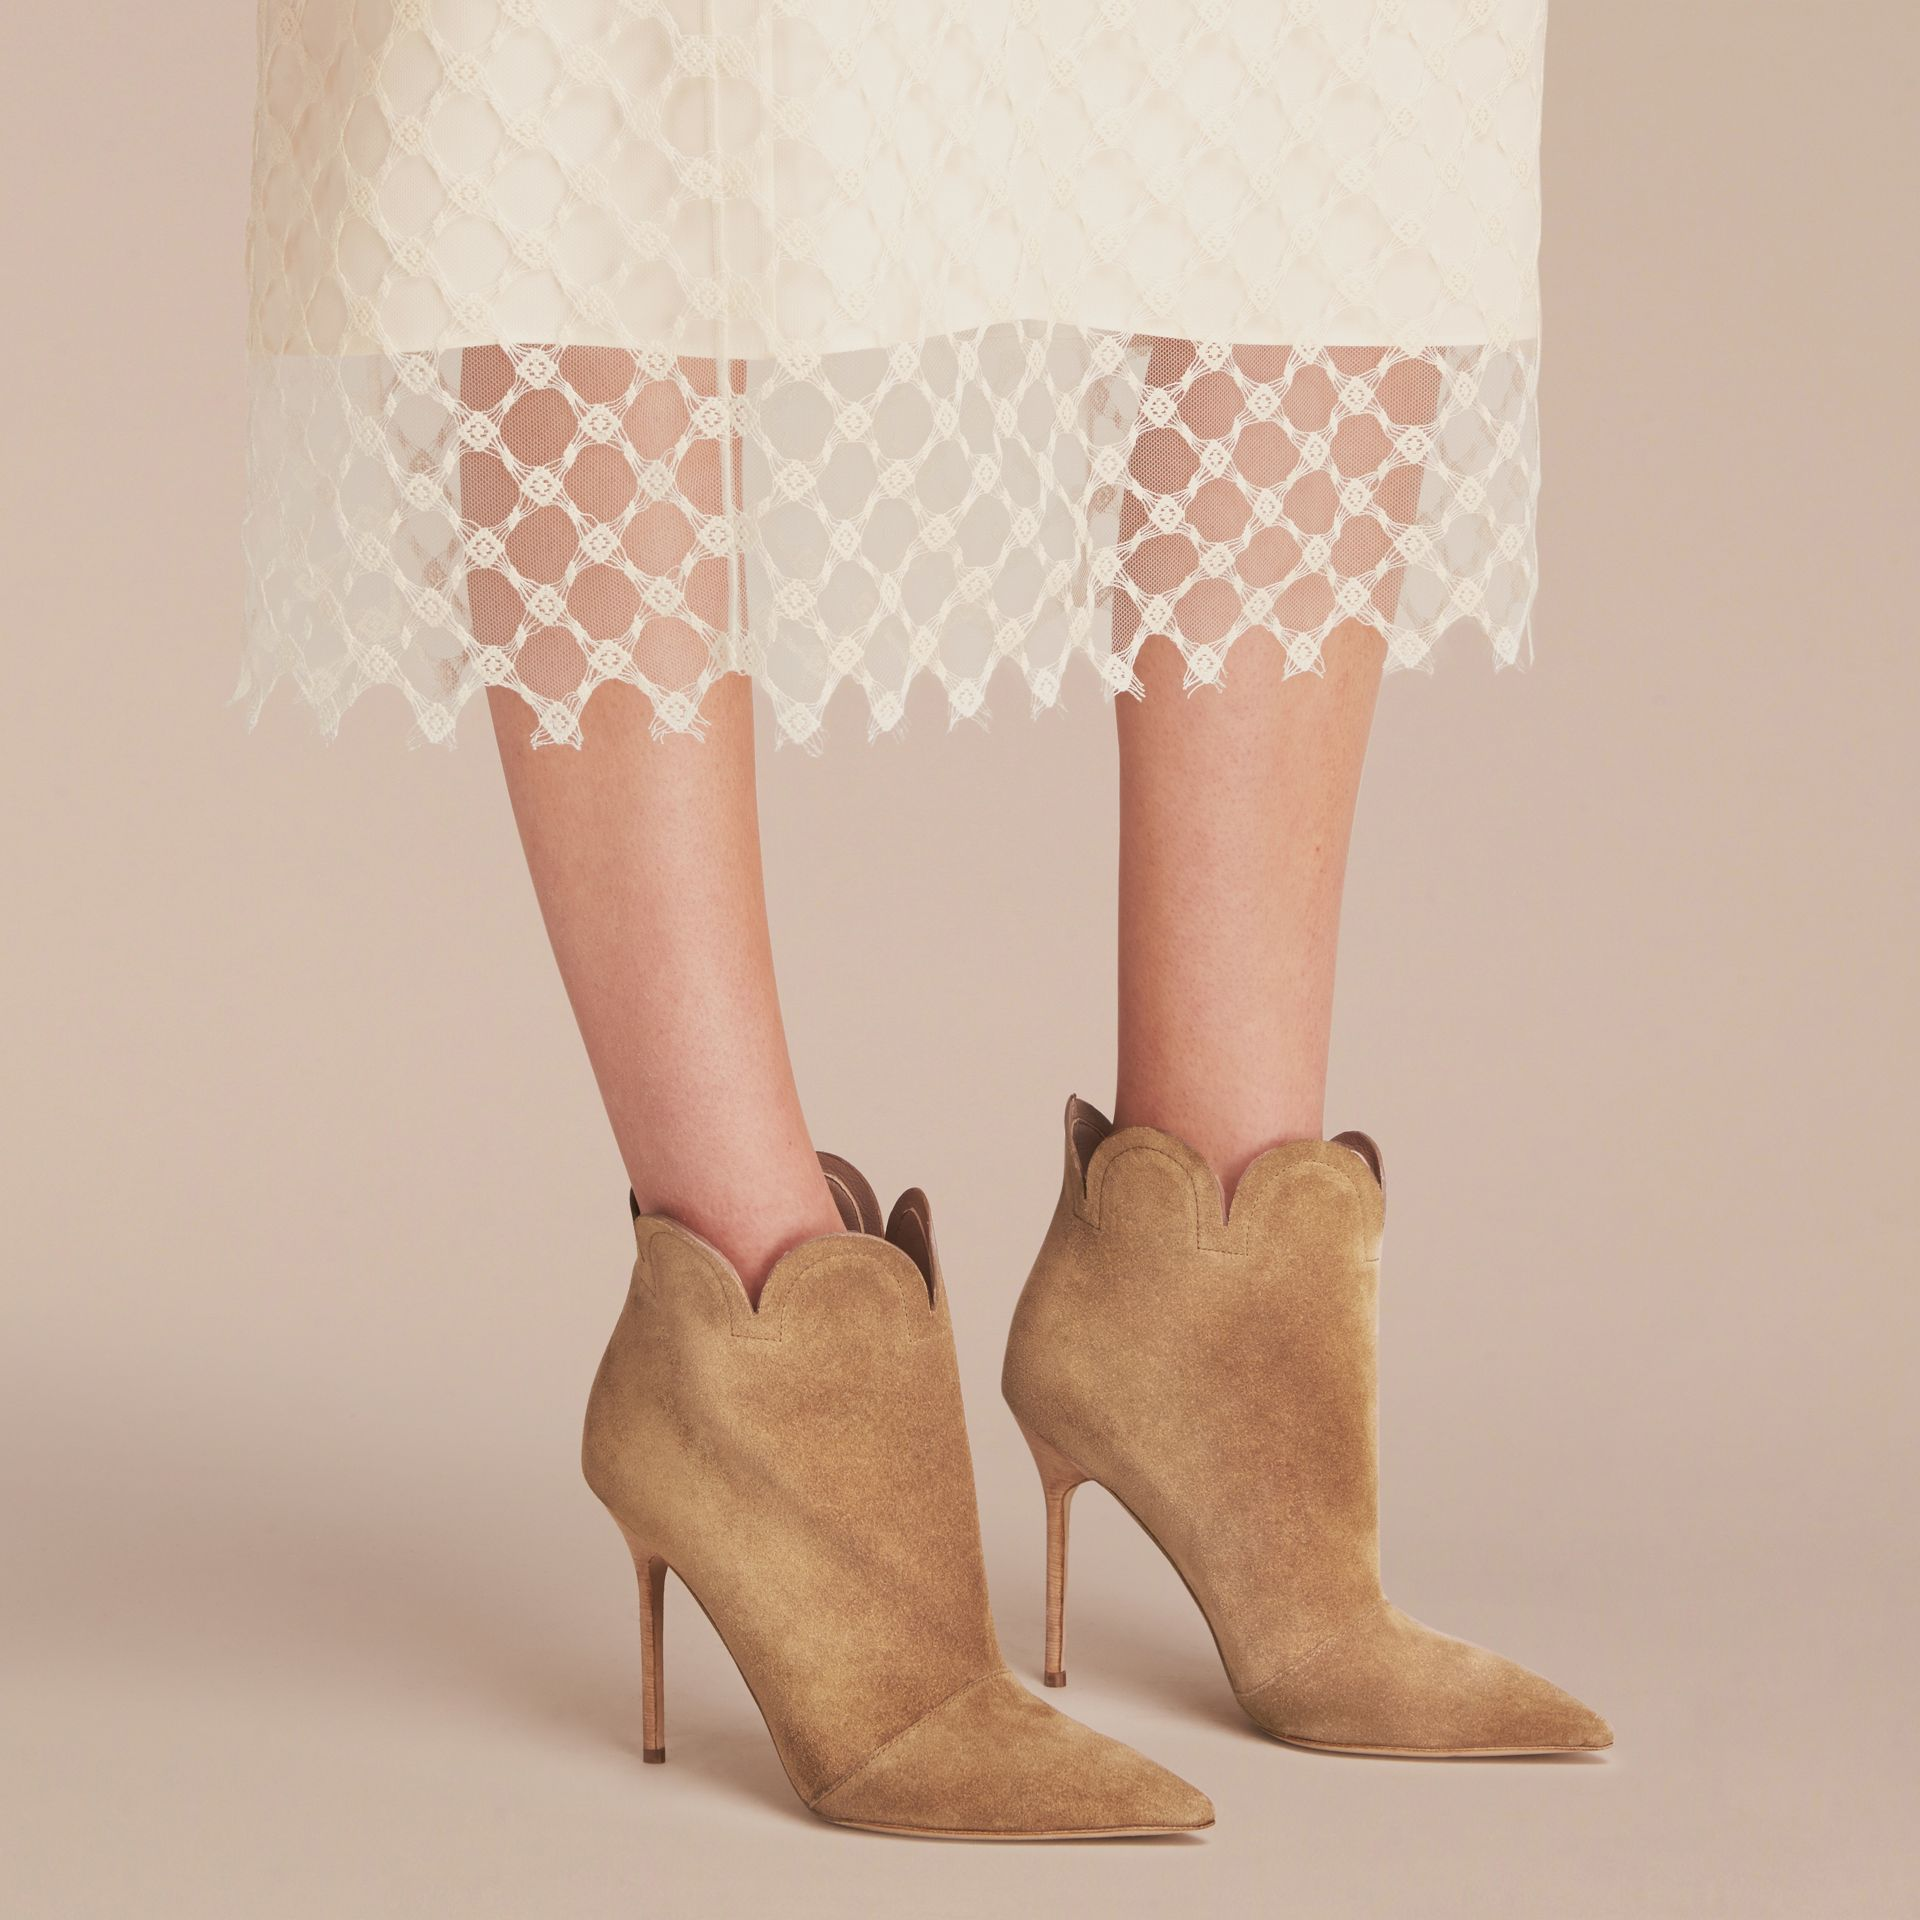 Scalloped Suede Ankle Boots in Sandstone - Women | Burberry United States - gallery image 3